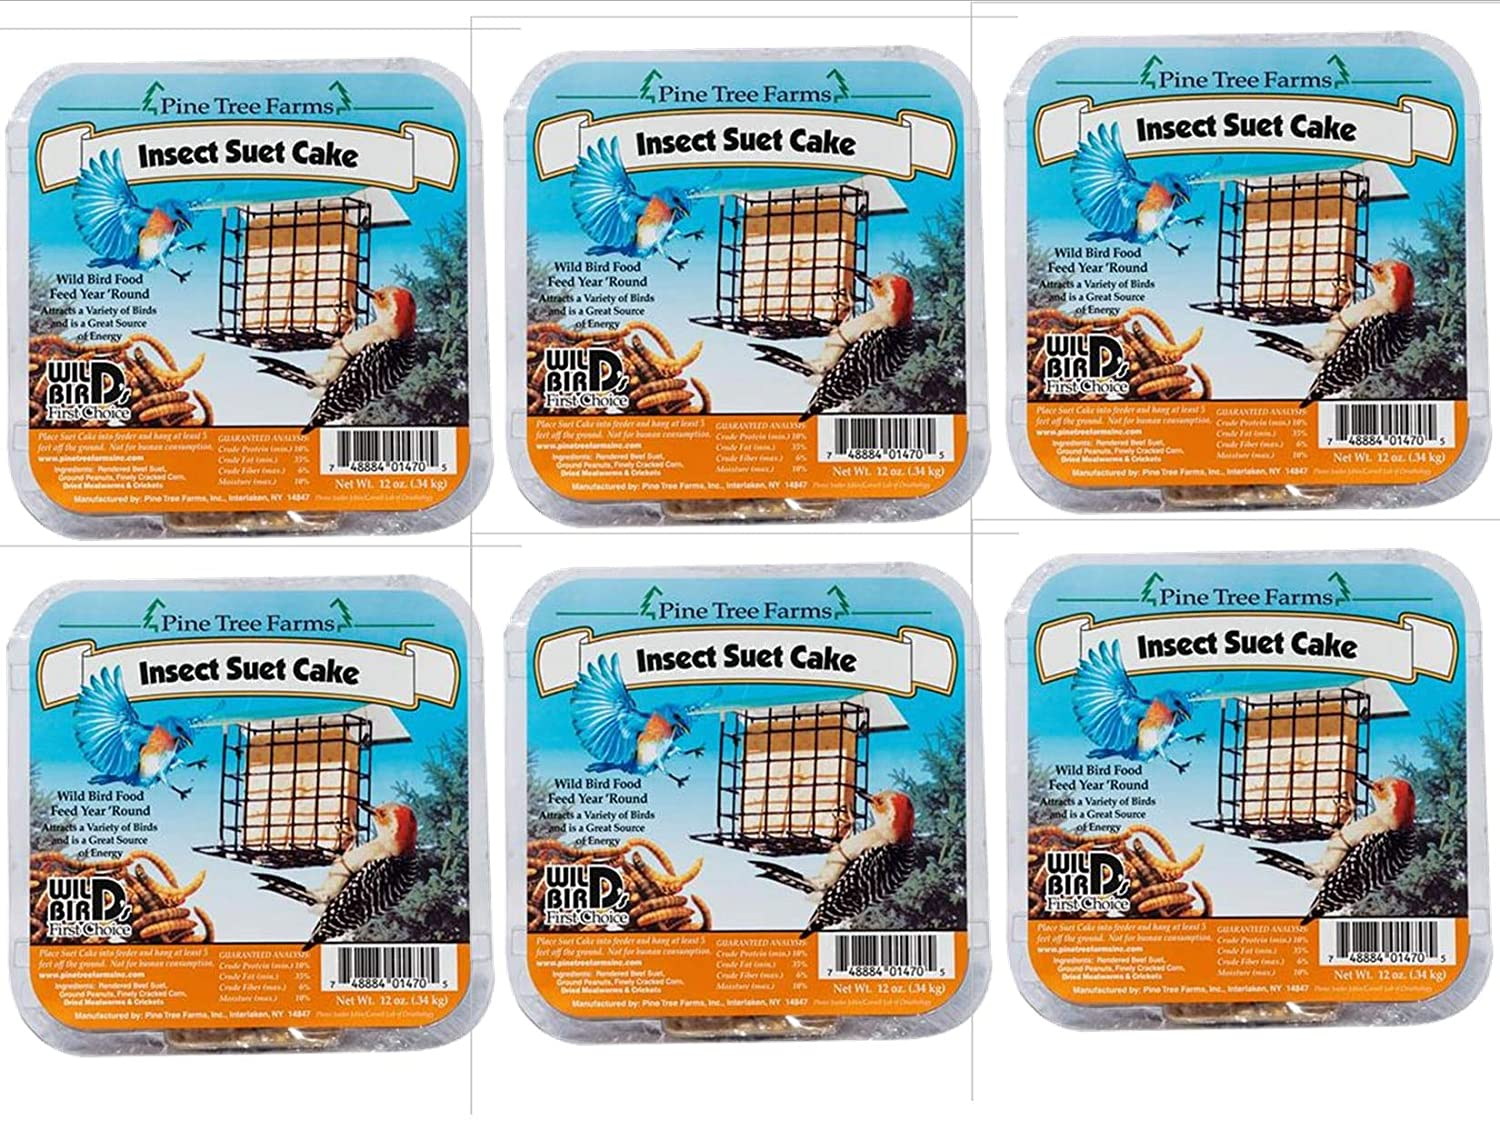 Pine Tree Farms Insect Suet Cakes 12 oz. 1470 Made in USA (6)